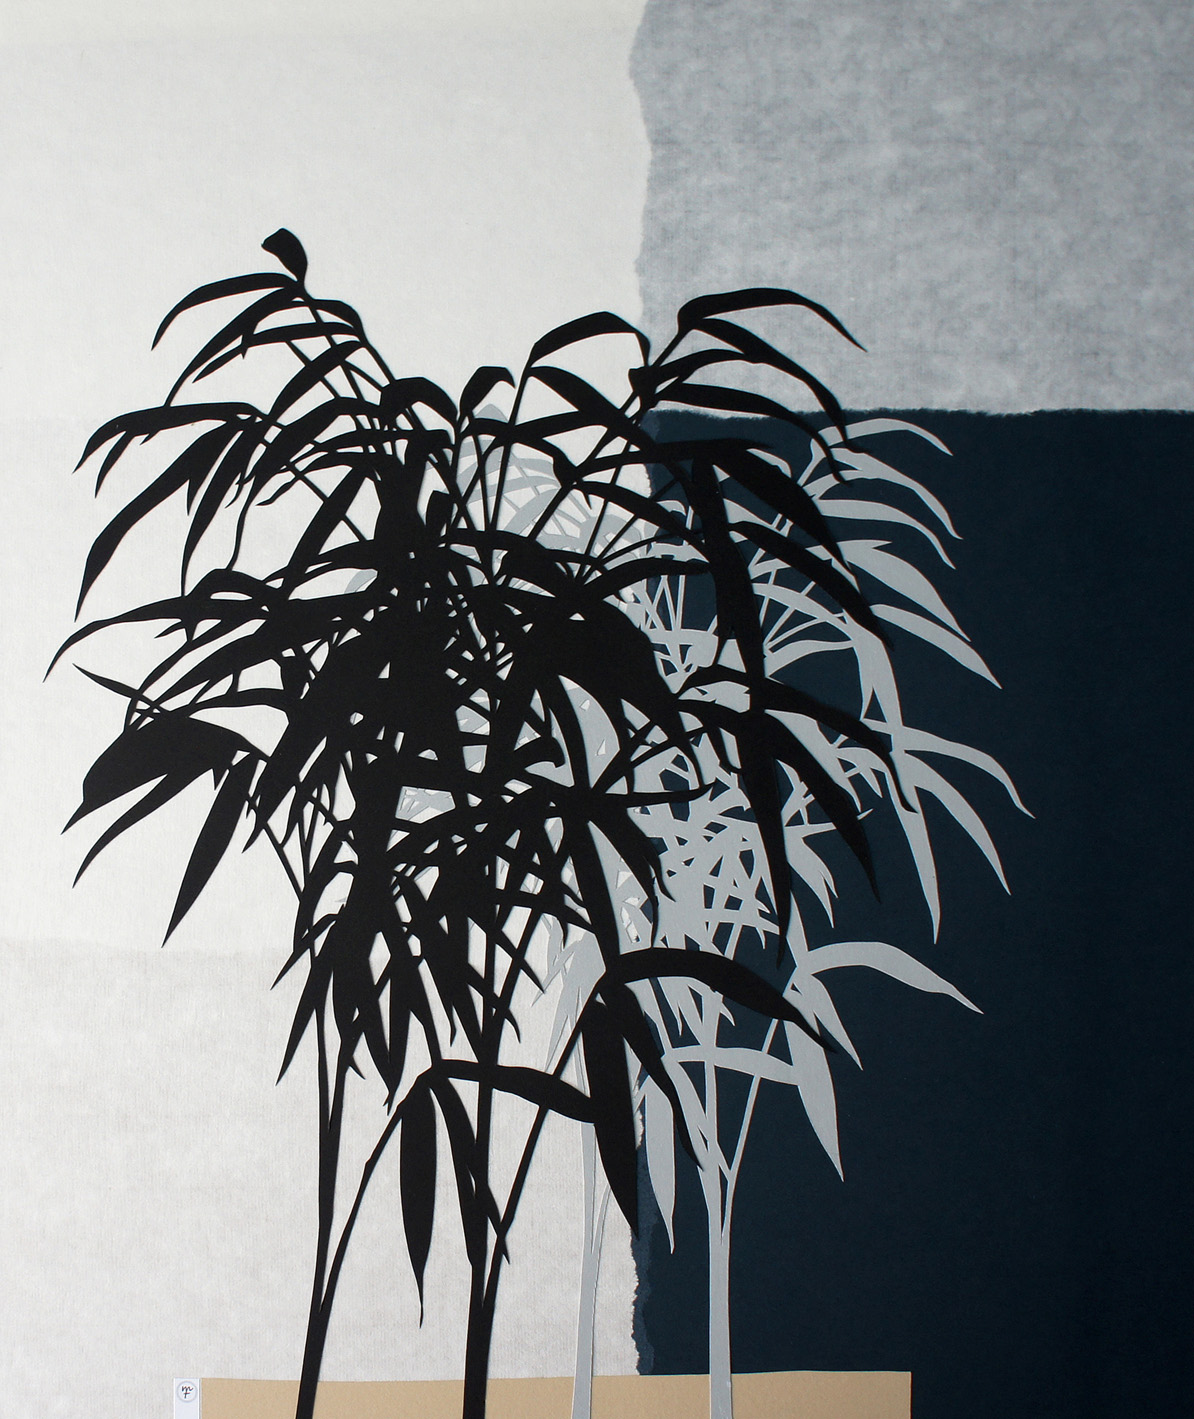 Bamboo Garden, cut paper collage, Mike Tedder